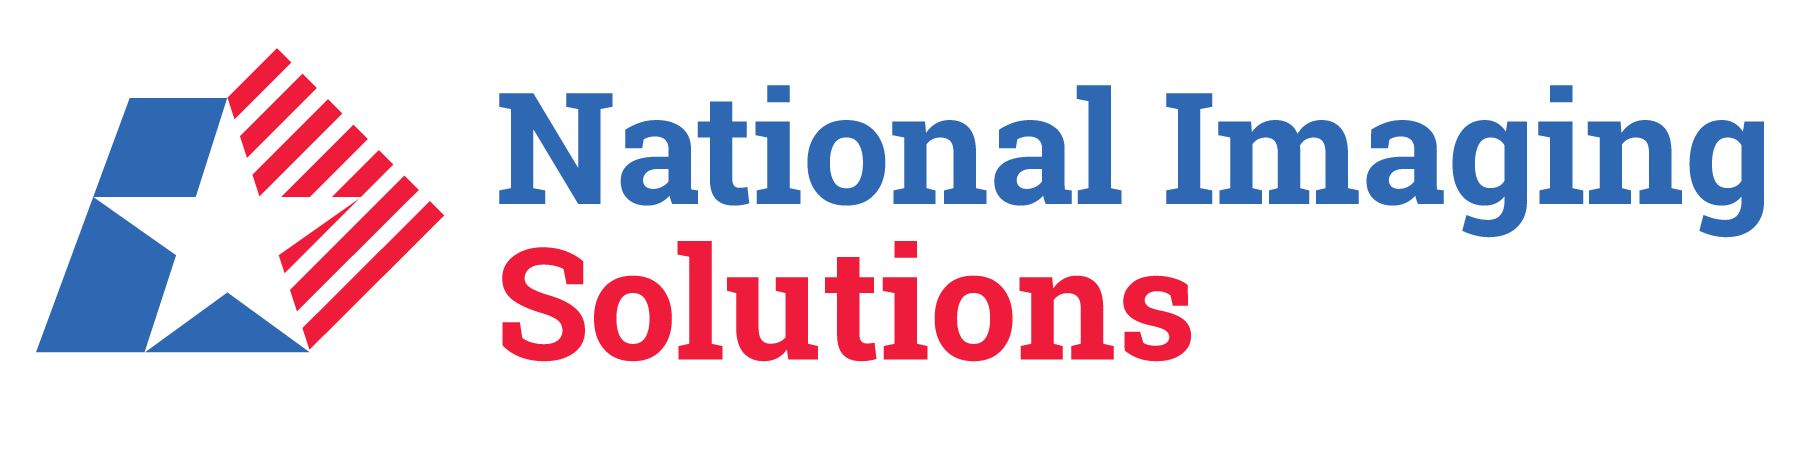 National Imaging Solutions